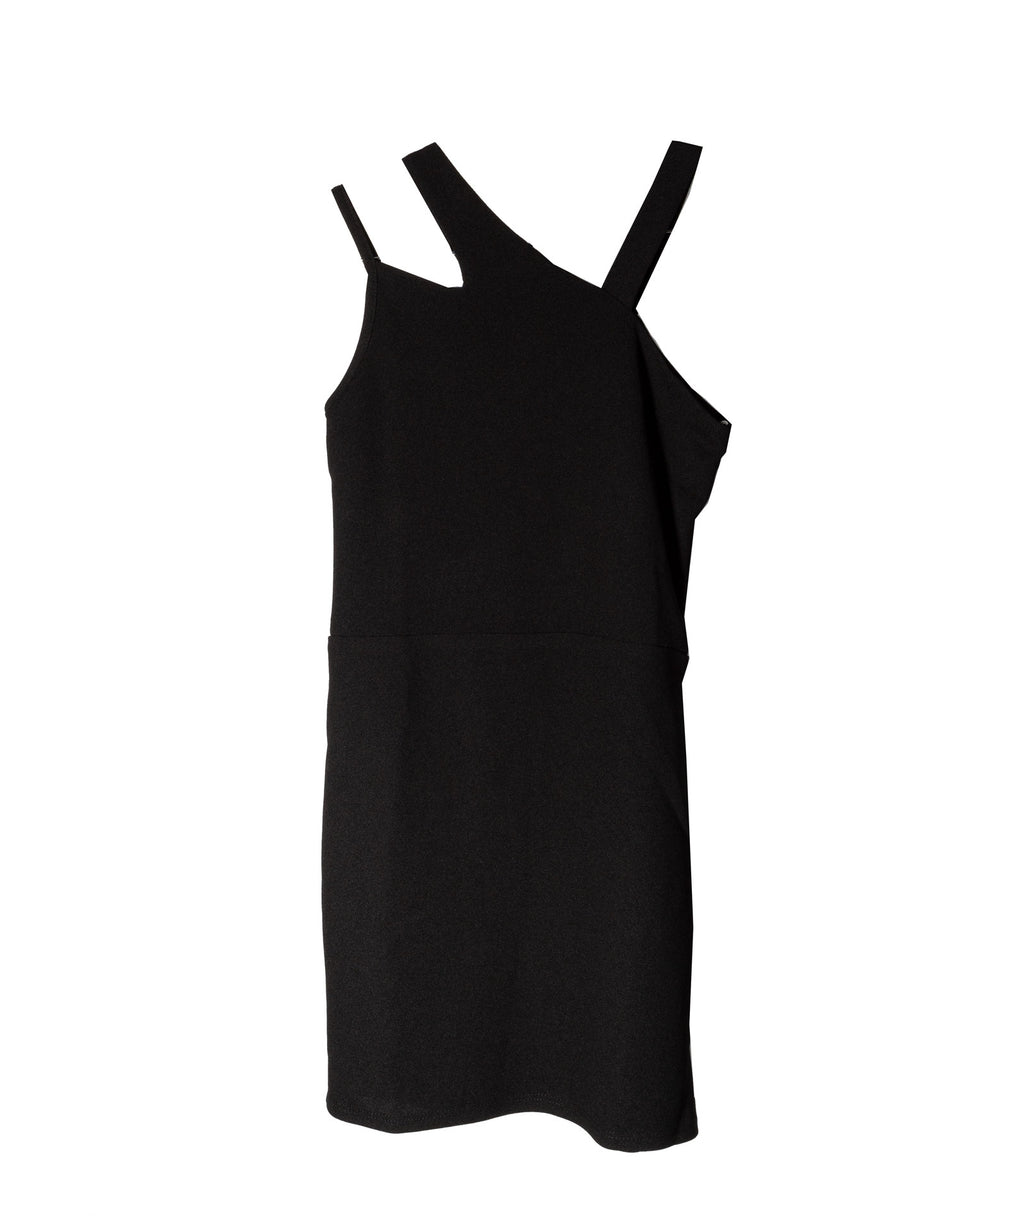 Sally Miller Girls Hayley Black Dress